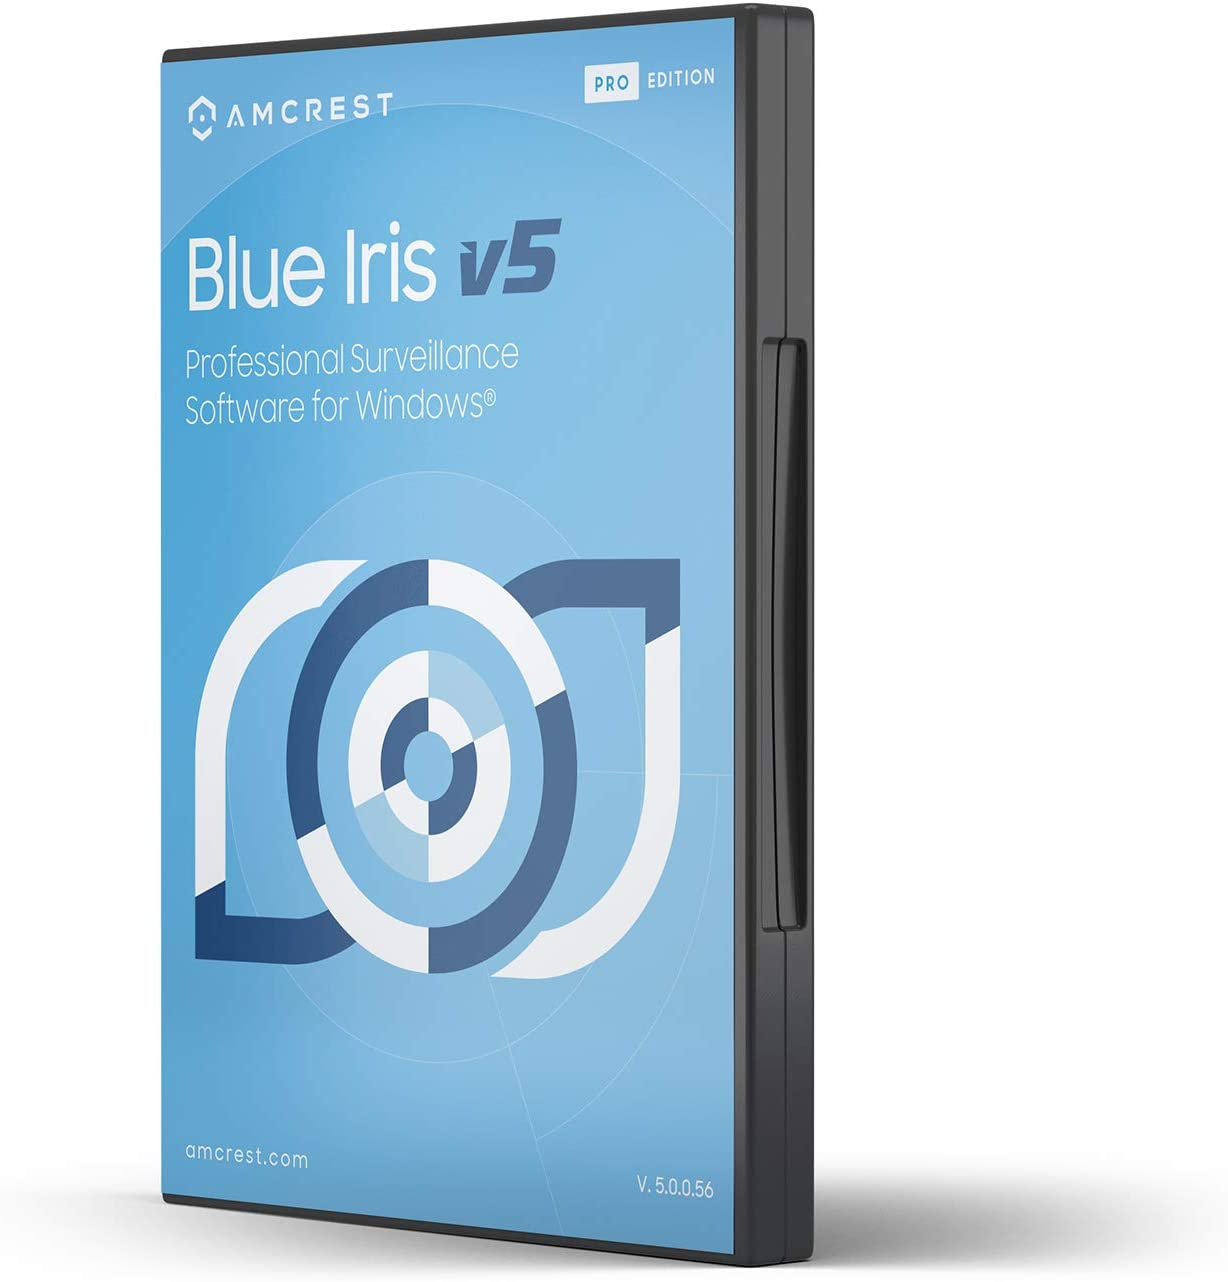 Amcrest Blue Iris Professional Version 5 - Supports Many IP Camera Brands Including Amcrest, Zone Motion Detection, H.265 Compression Recording, E-Mail and SMS Text Messaging Alerts!(BLUEIRISCD-V5)